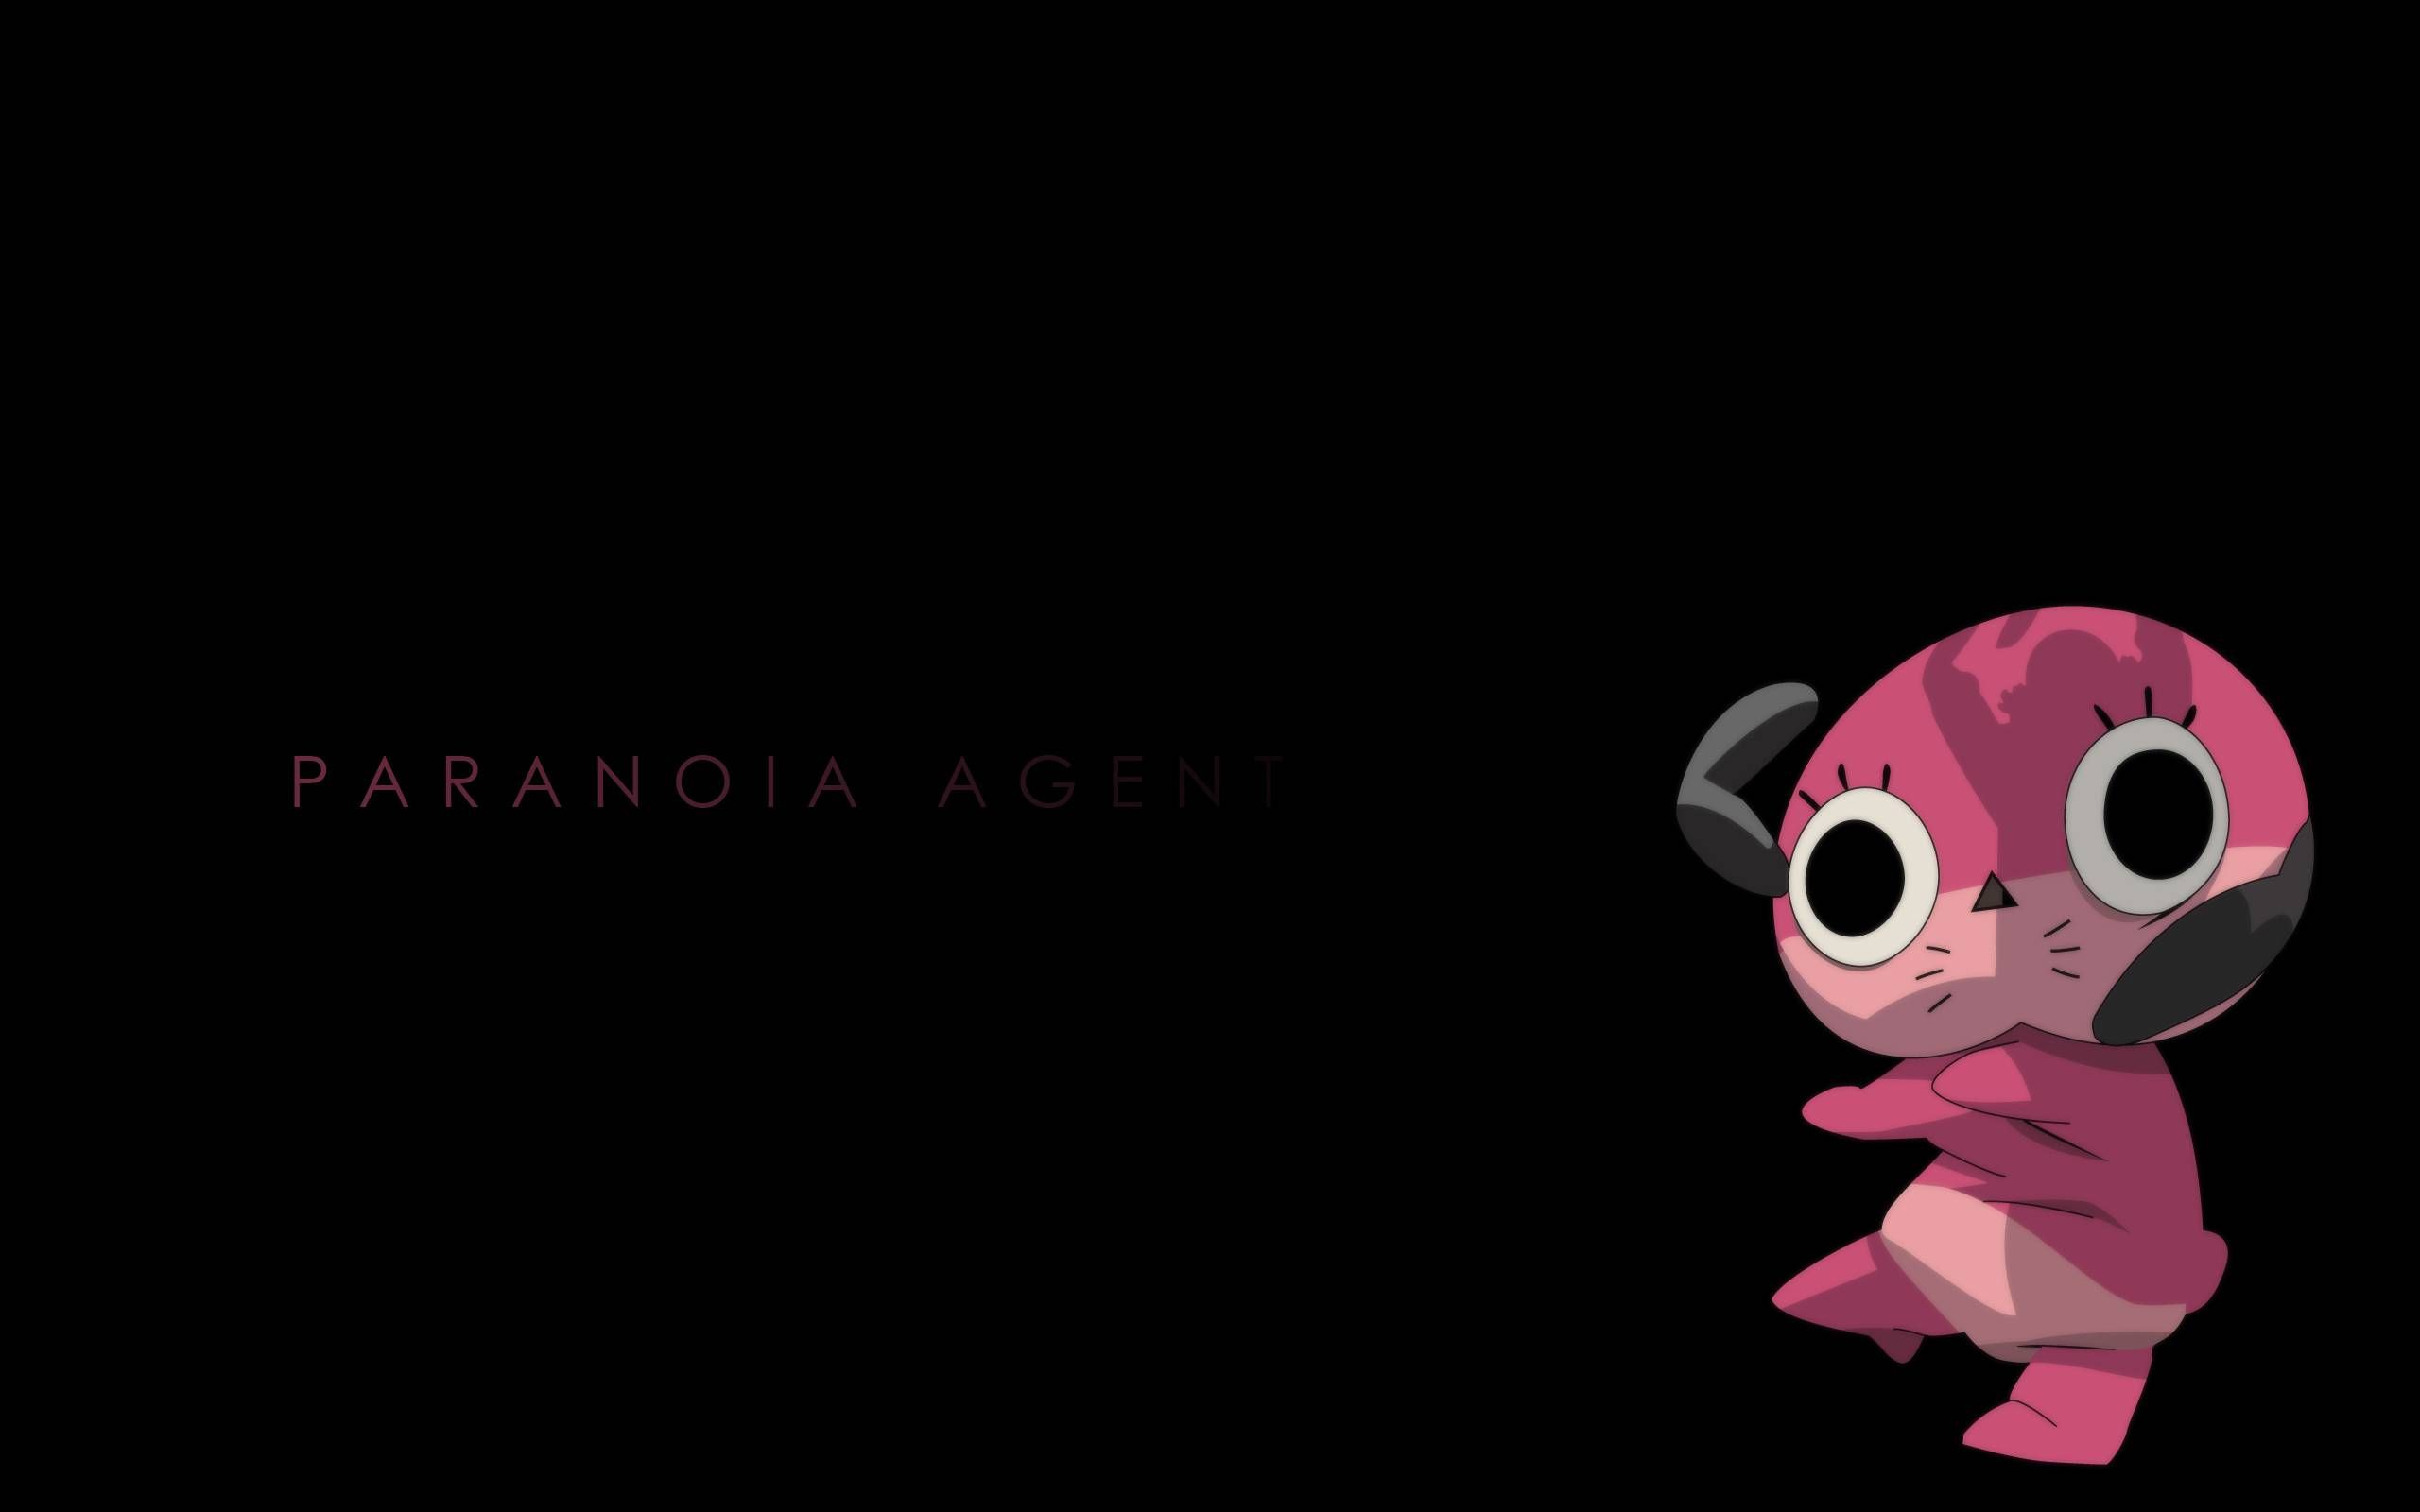 Pin by Carmen Petry on Paranoia Agent: - Animation Creative ...